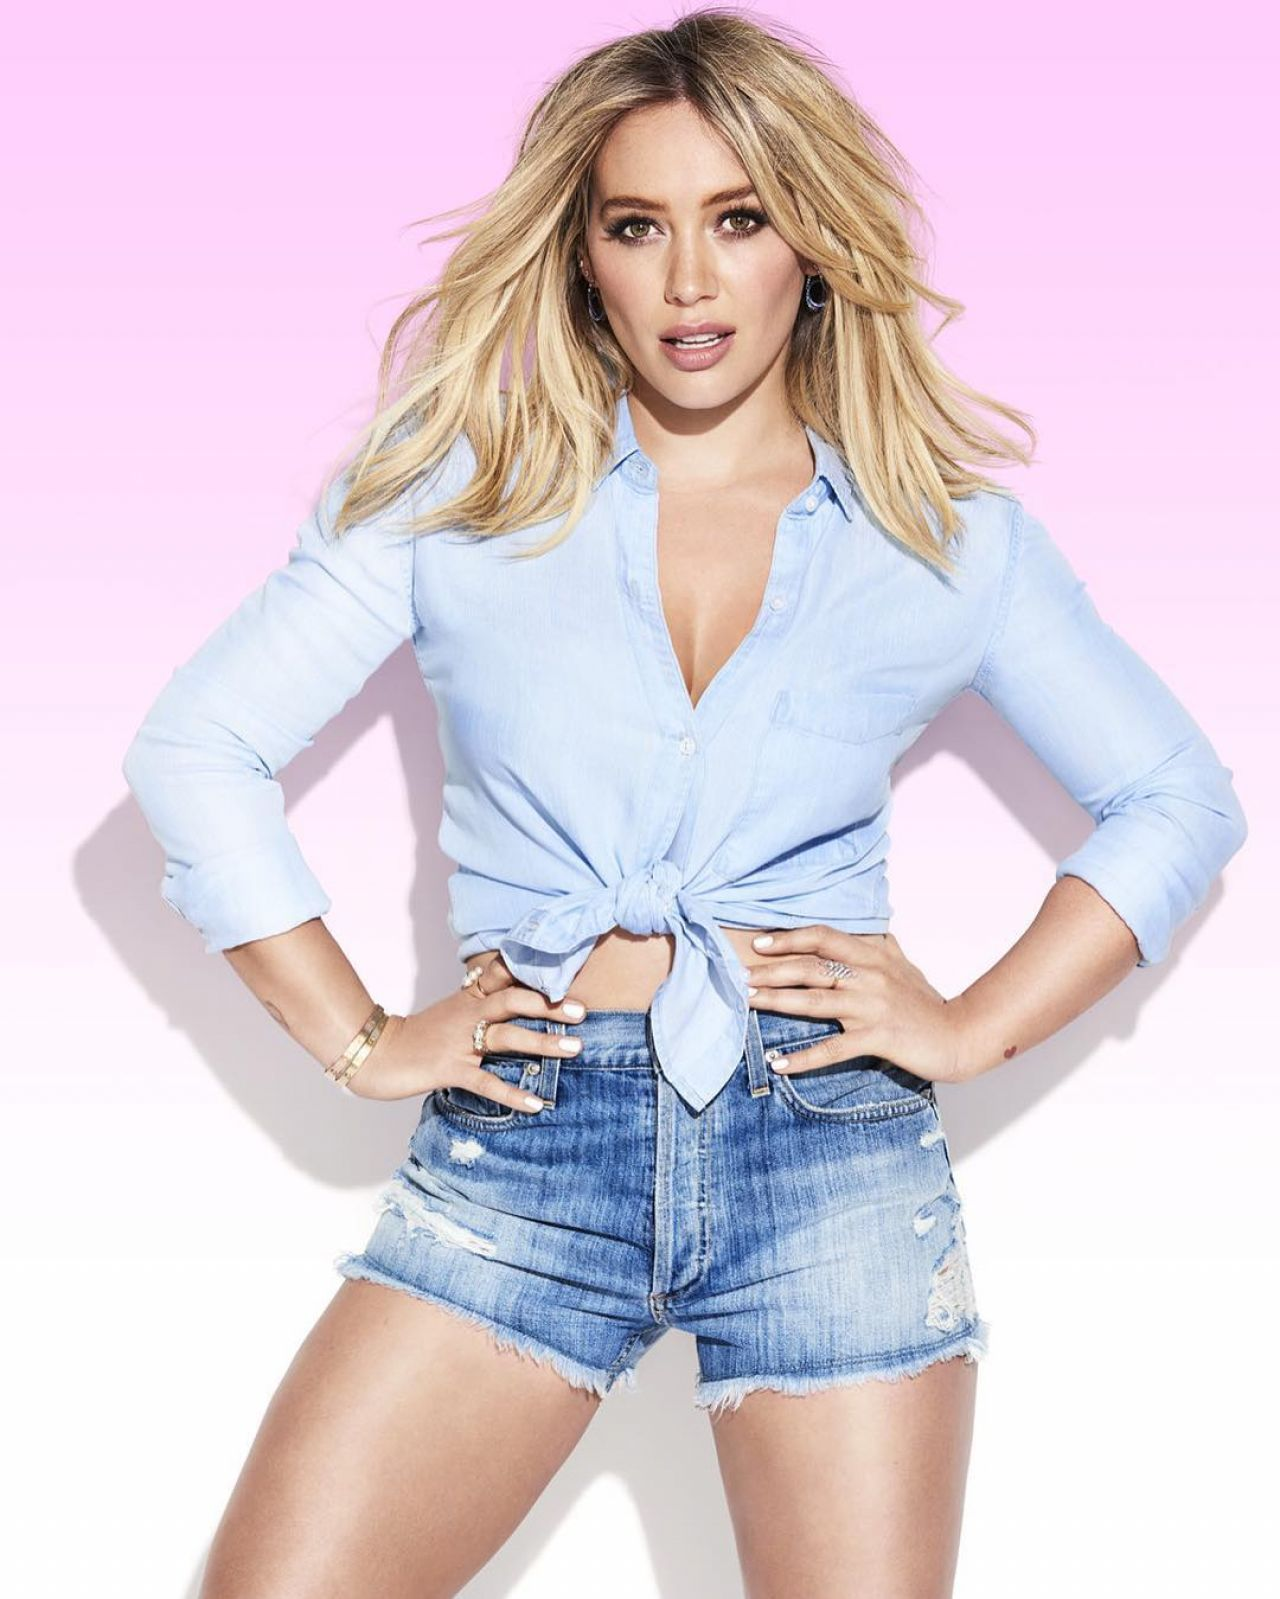 Discussion on this topic: Jenne lombardo see through photos, hilary-duff-cosmo/